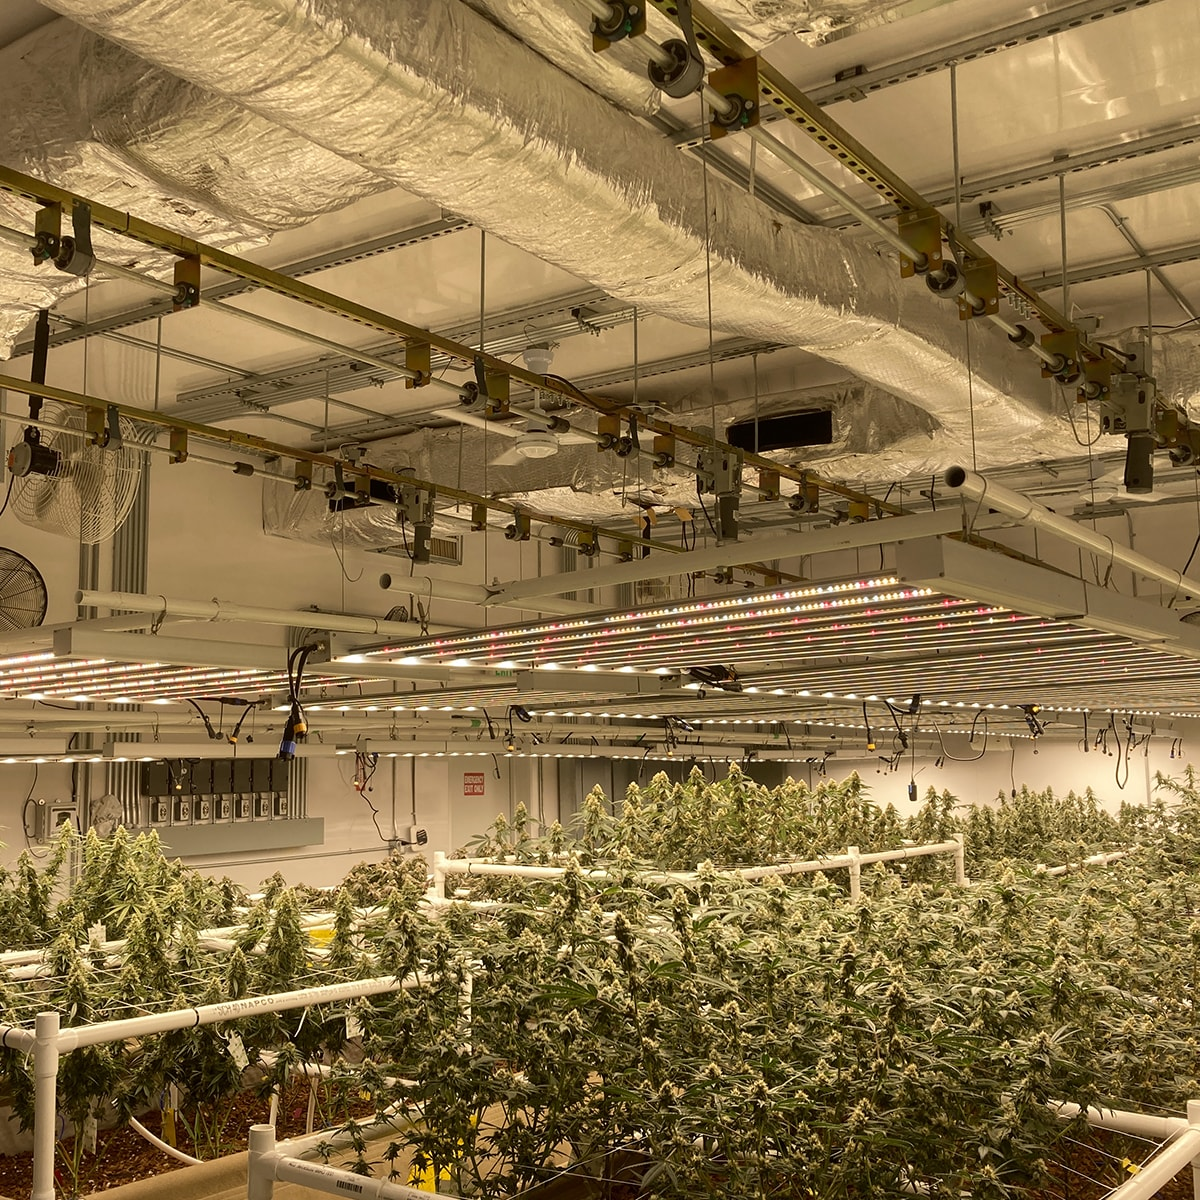 grow room light lifts at different heights